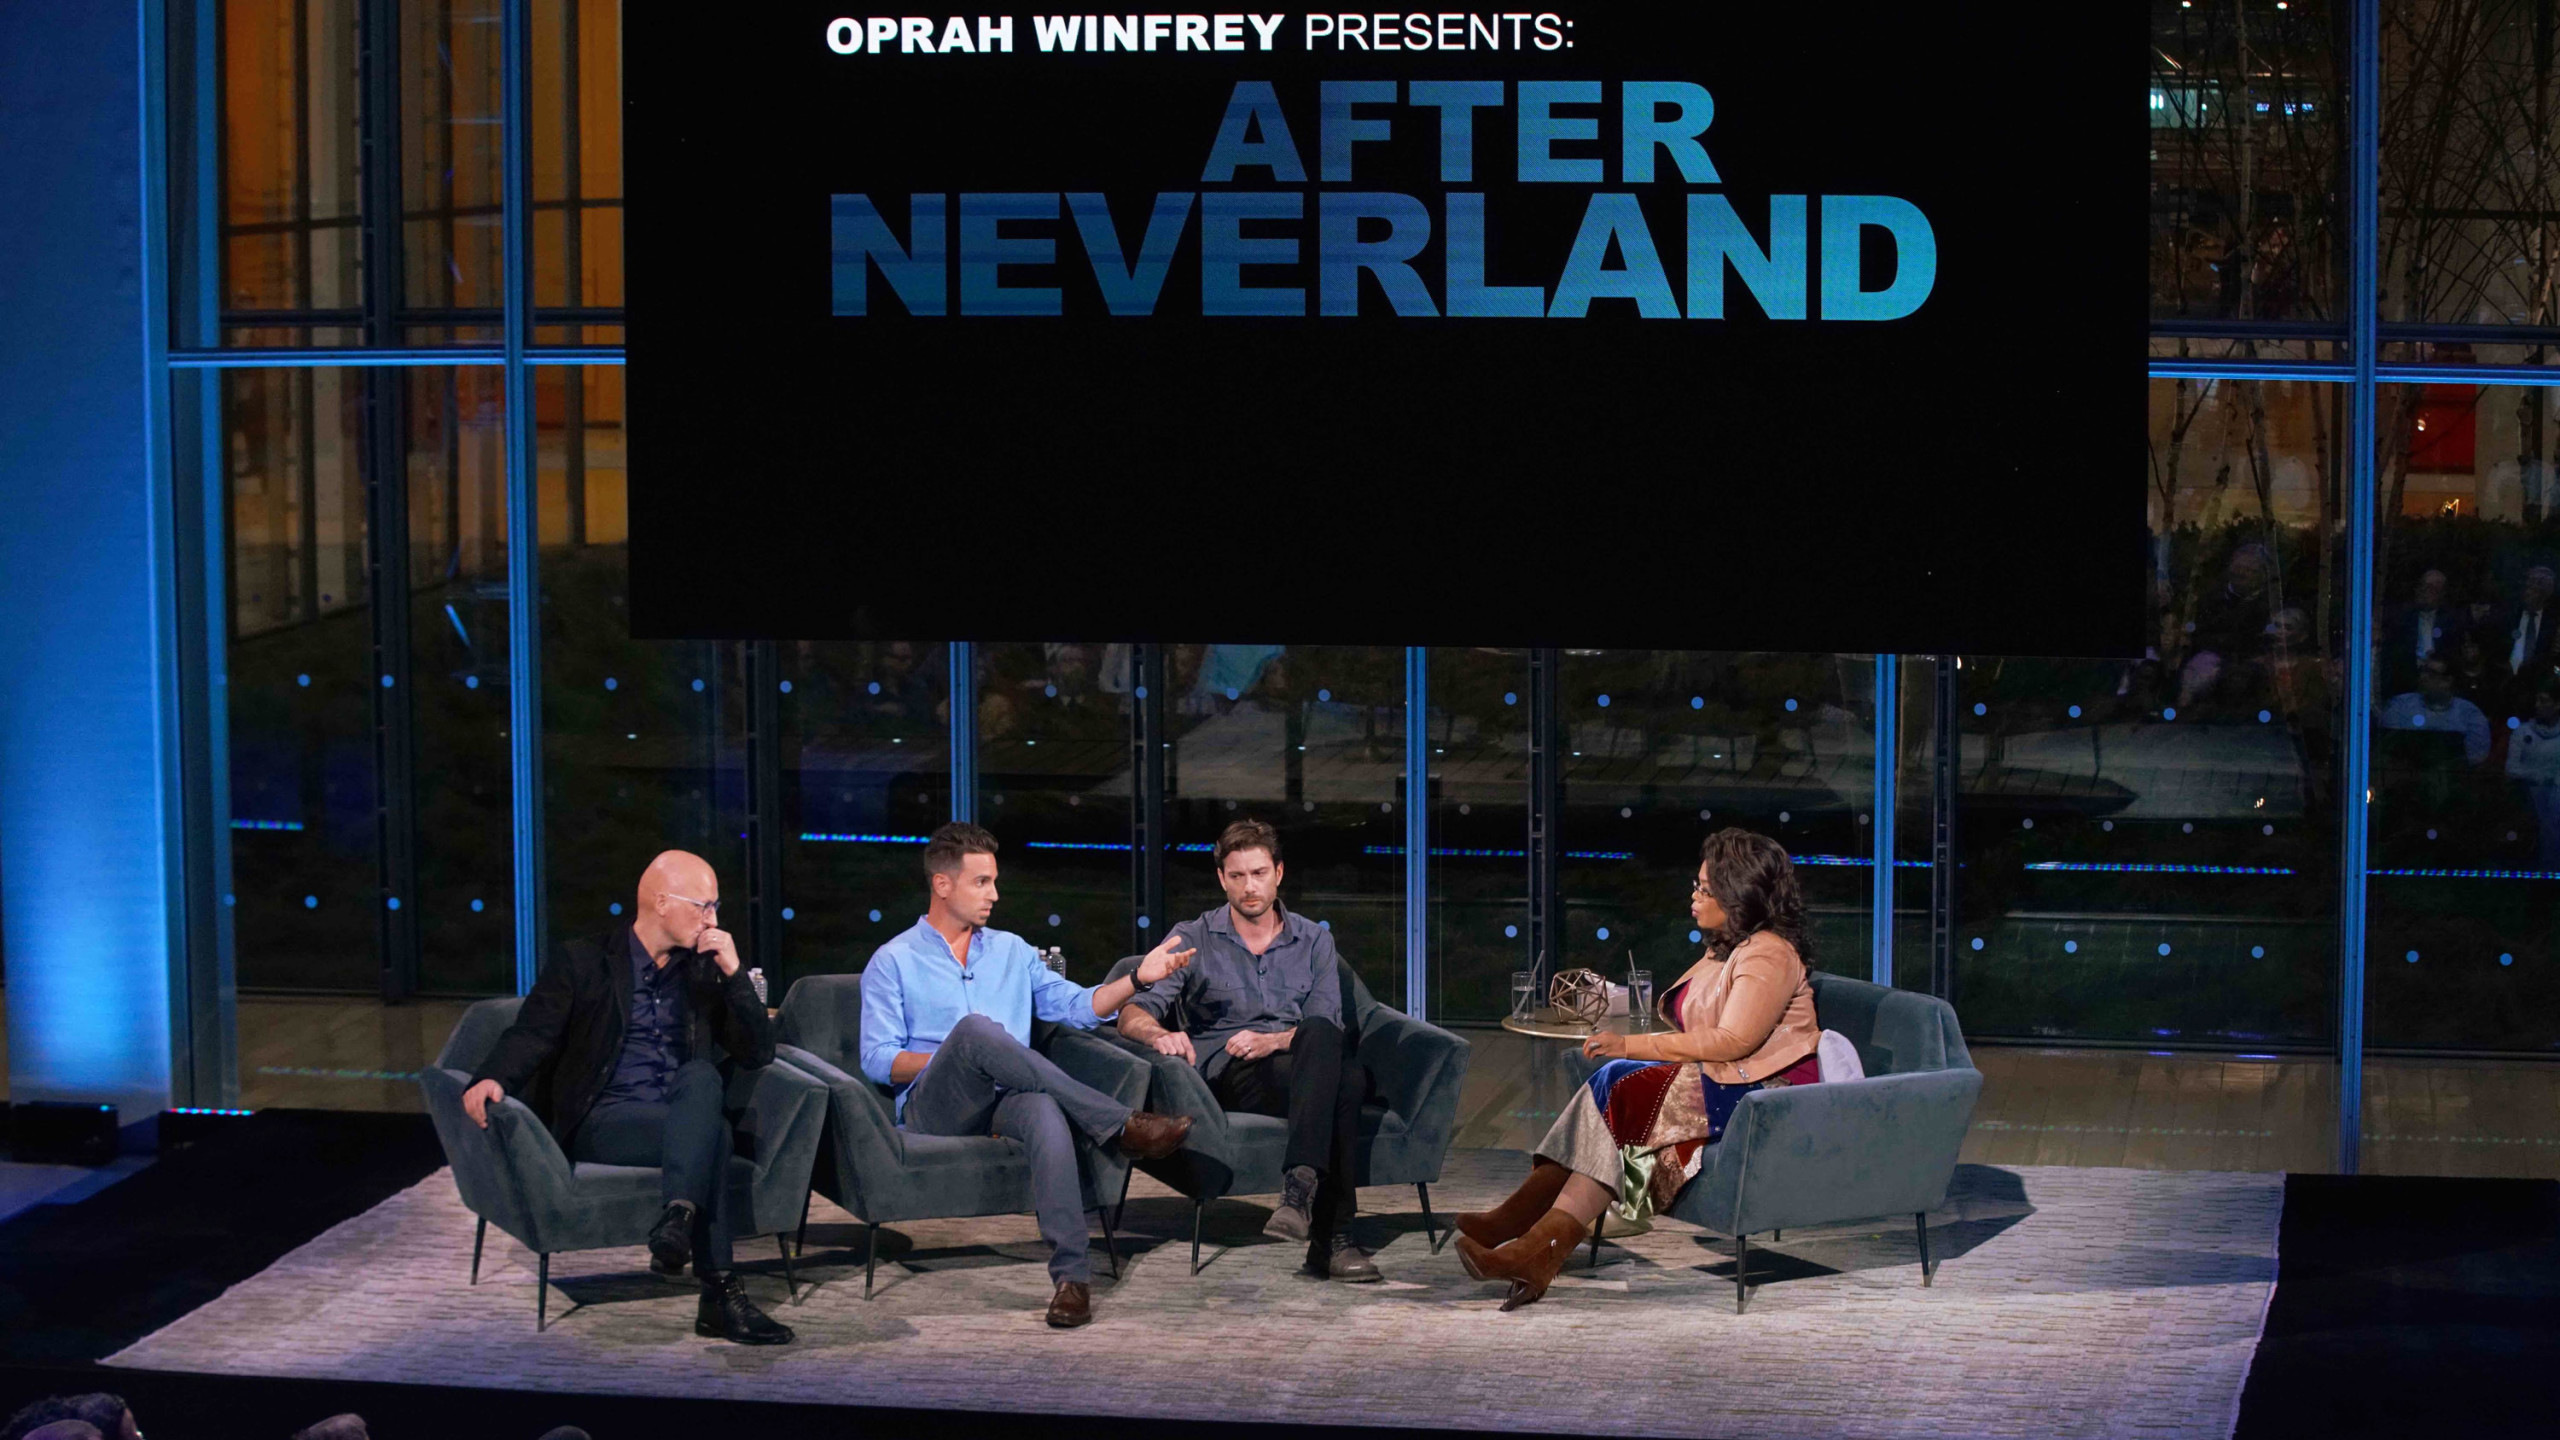 Oprah Winfrey Presents: After Neverland